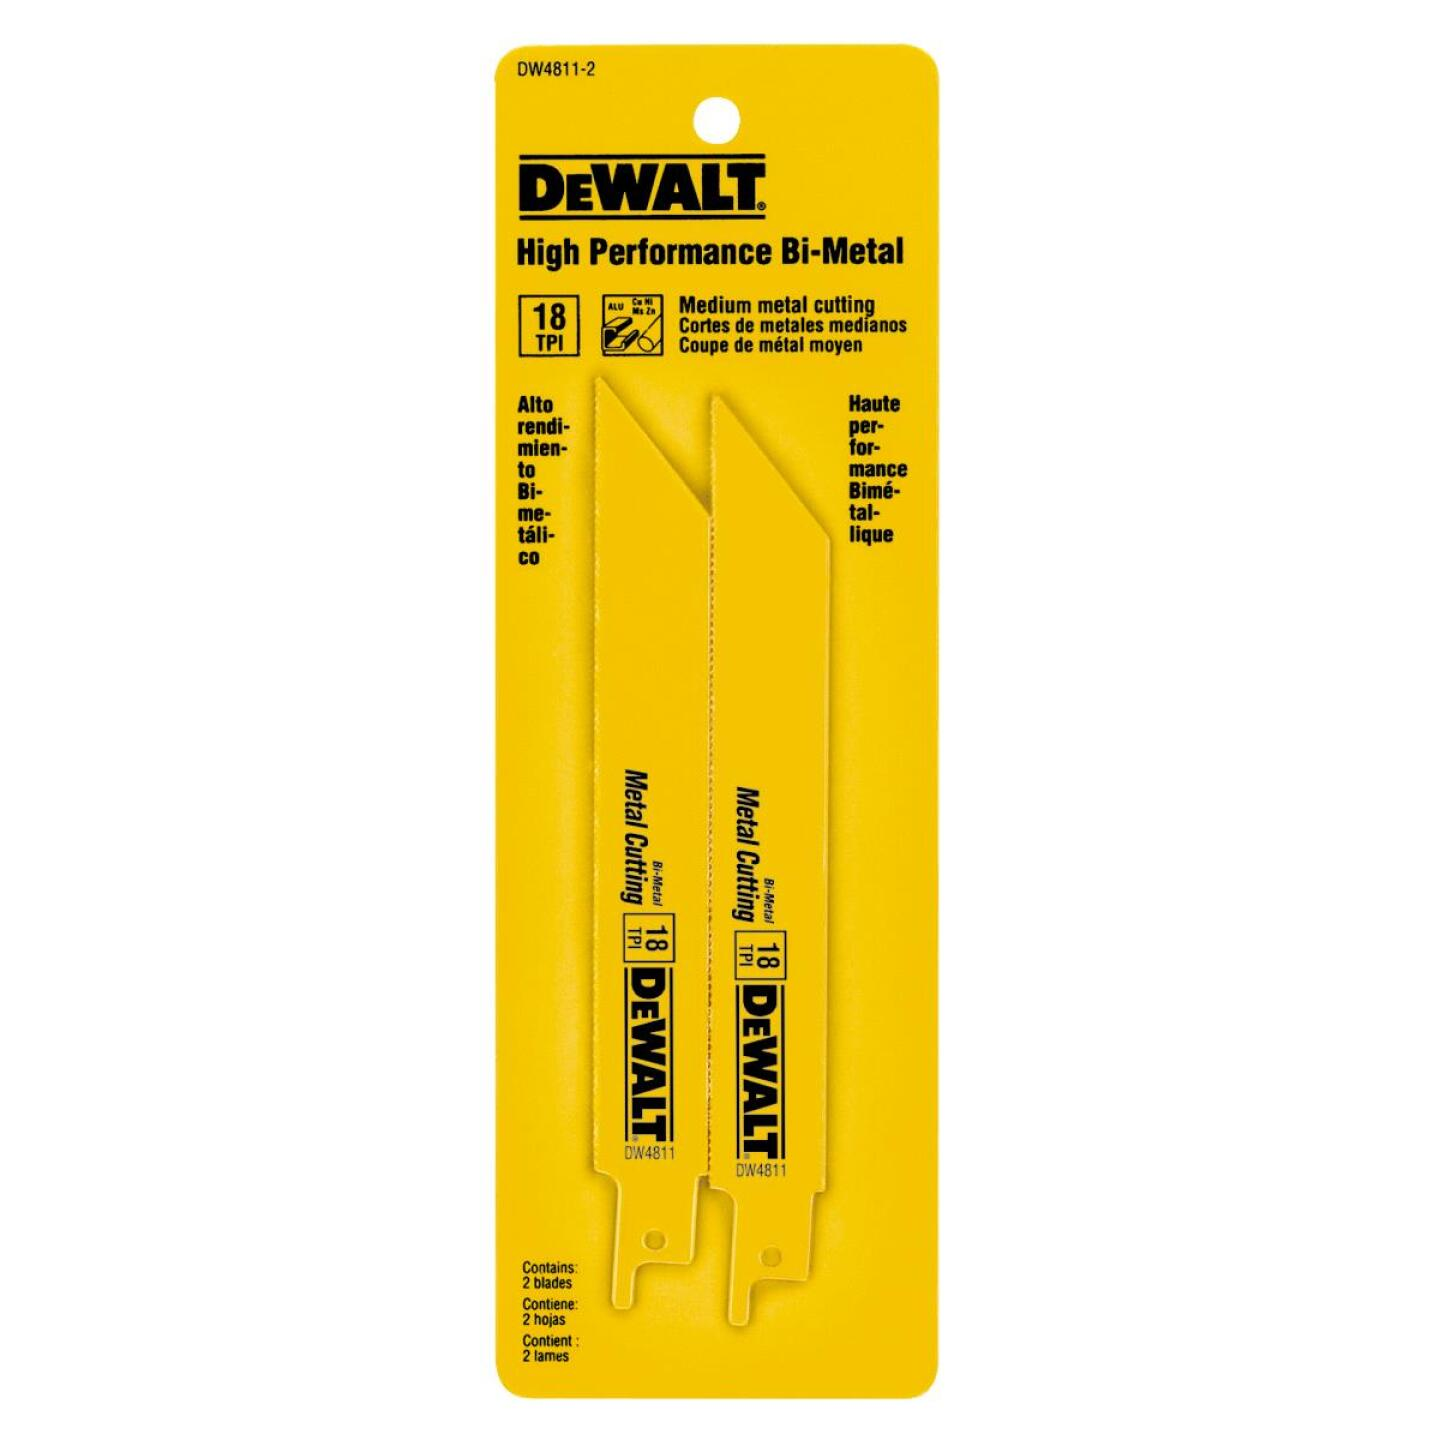 DeWalt 6 In. 18 TPI Medium Metal Reciprocating Saw Blade (2-Pack) Image 2